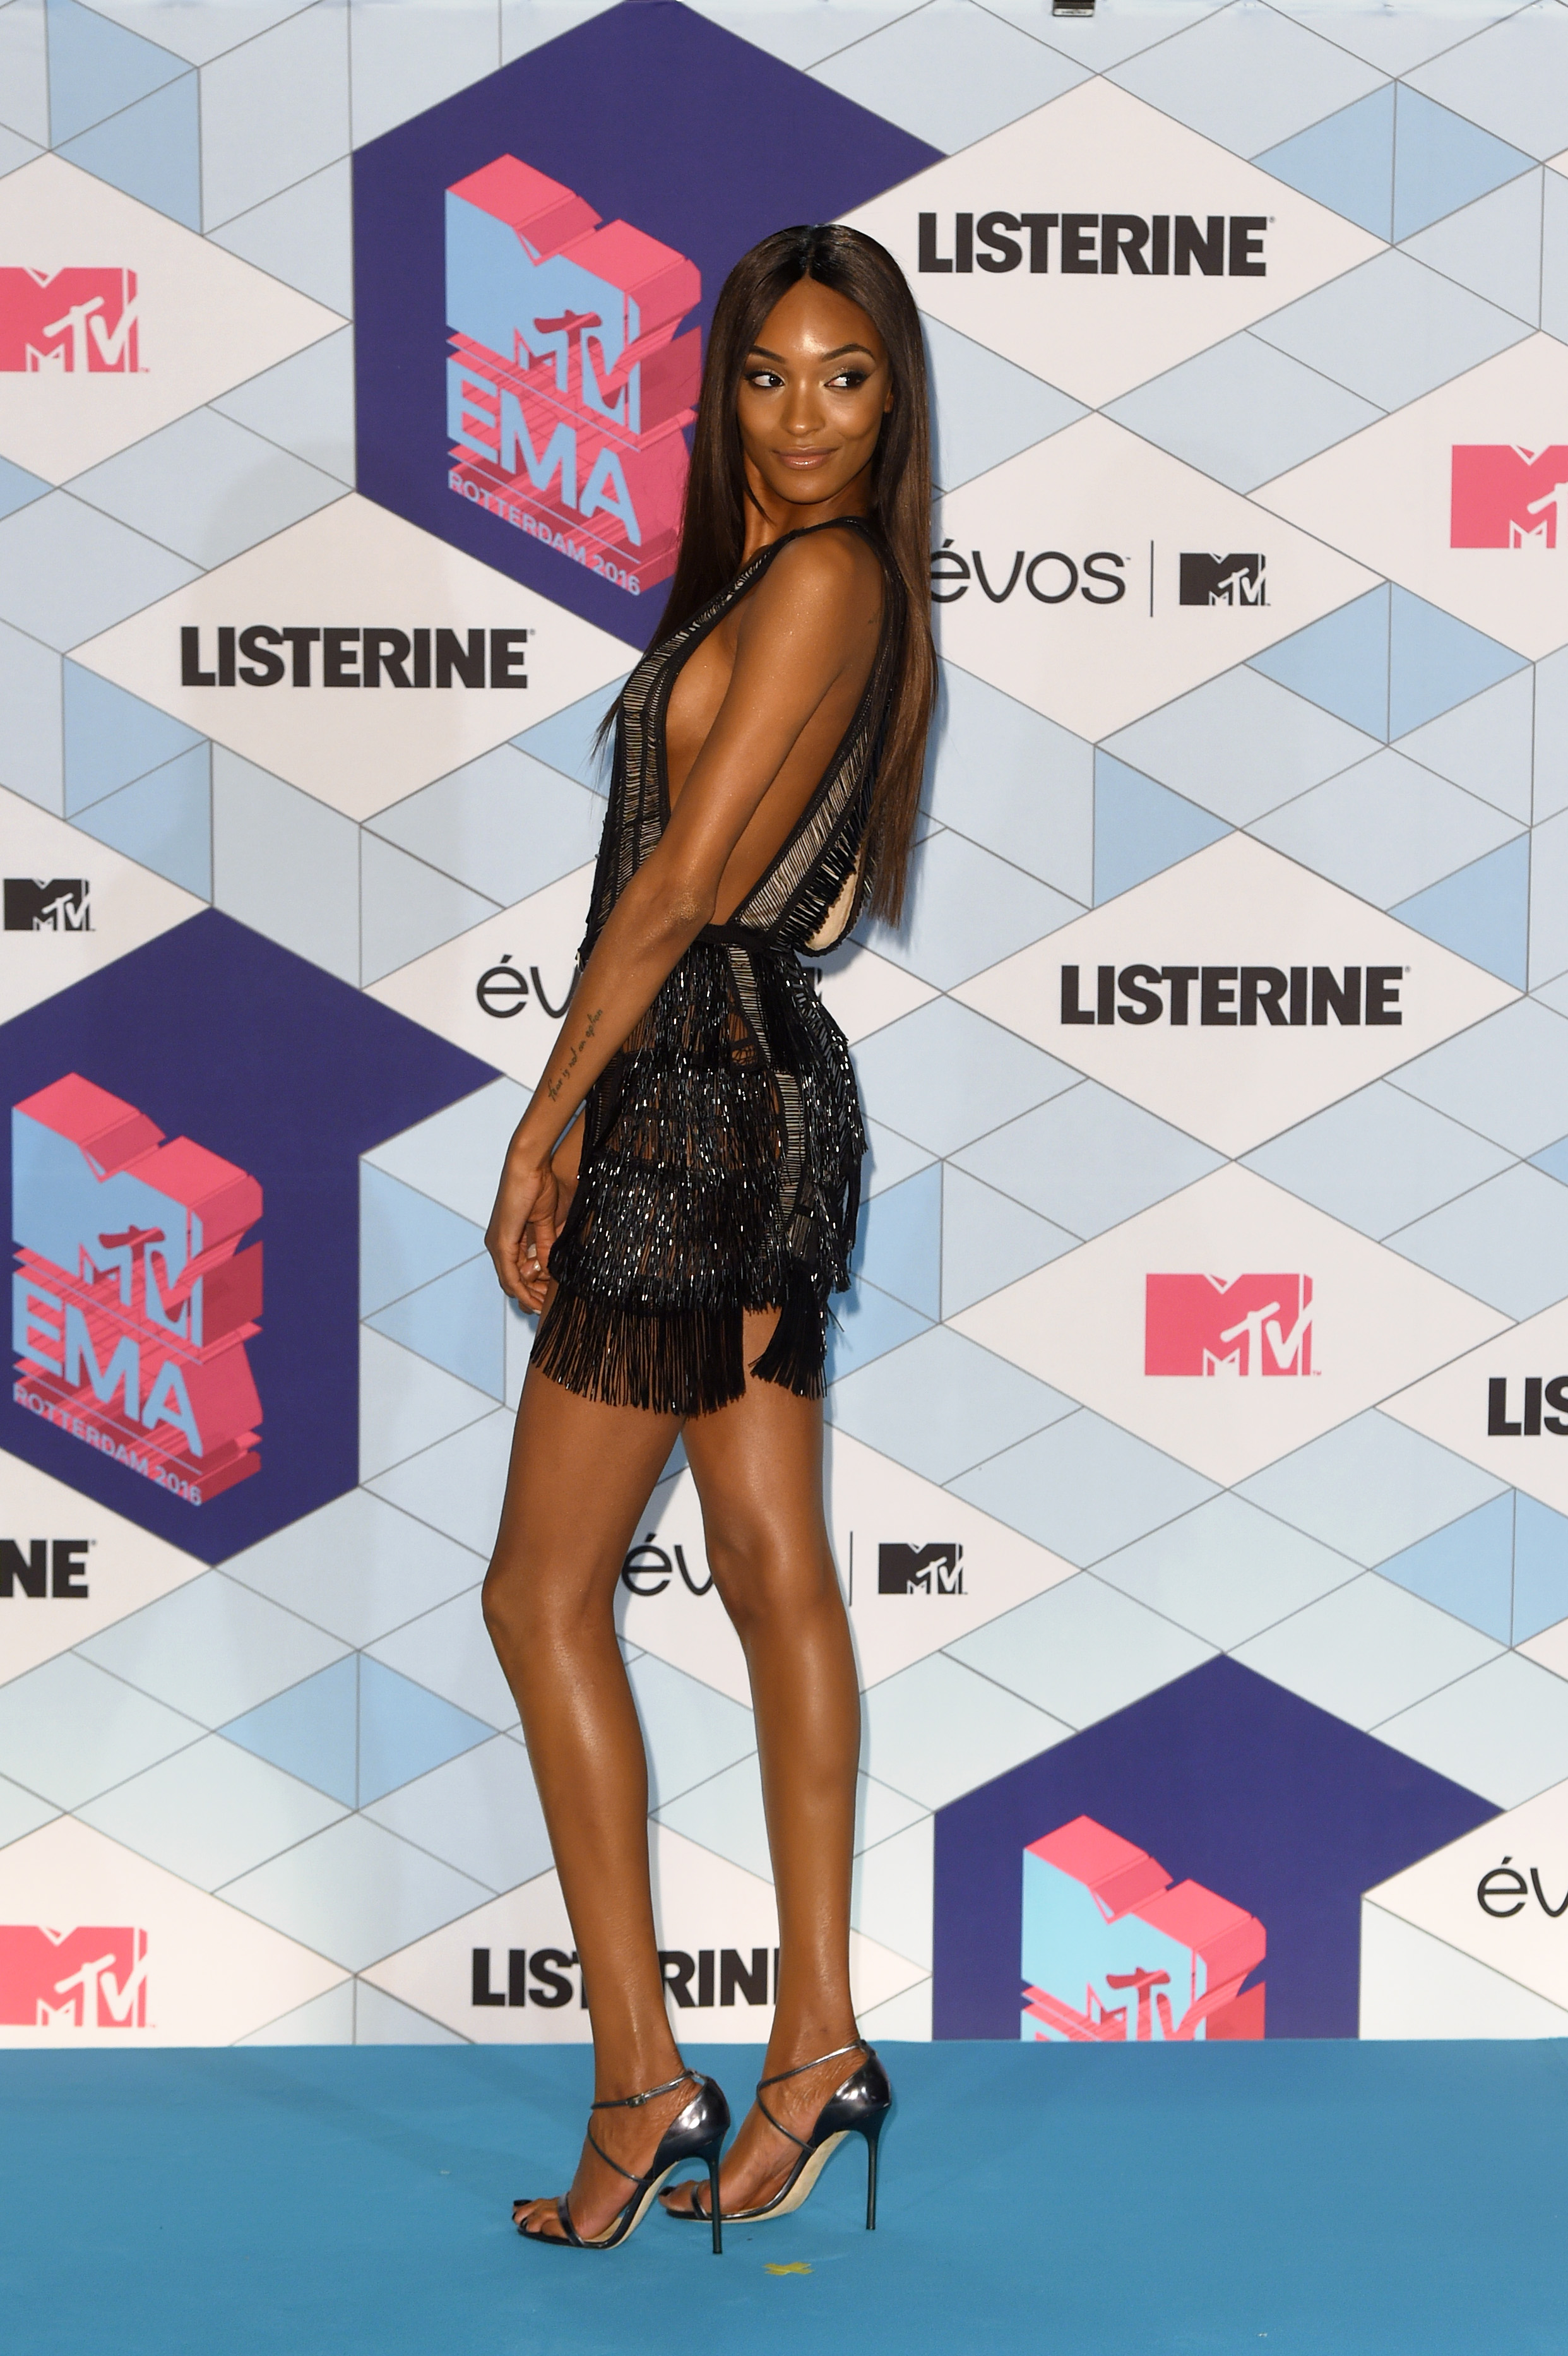 ROTTERDAM, NETHERLANDS - NOVEMBER 06:  Presenter Jourdan Dunn poses in the winner's room during the MTV Europe Music Awards 2016 on November 6, 2016 in Rotterdam, Netherlands.  (Photo by Anthony Harvey/Getty Images for MTV)